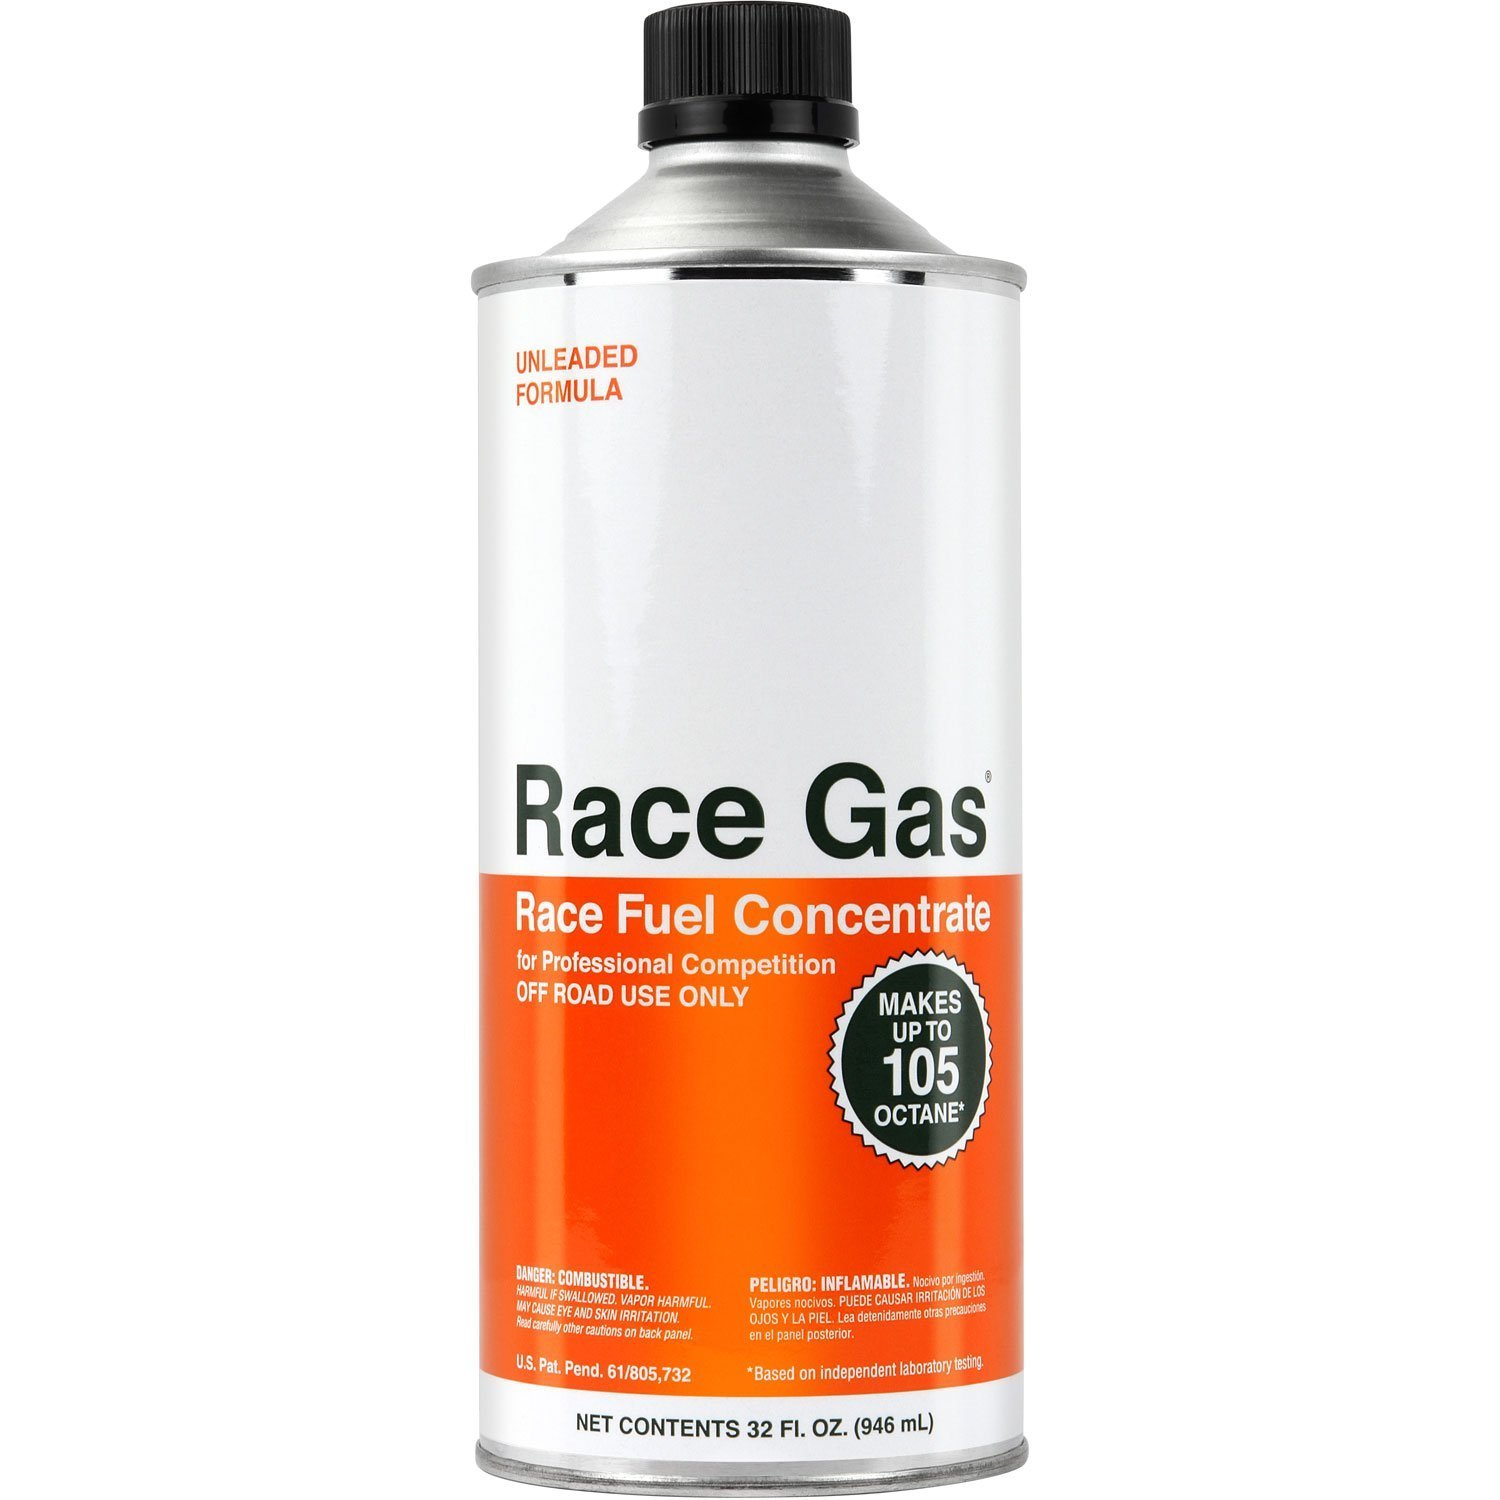 100032 Race Gas Fuel Additive For 87-93 Octane Gas